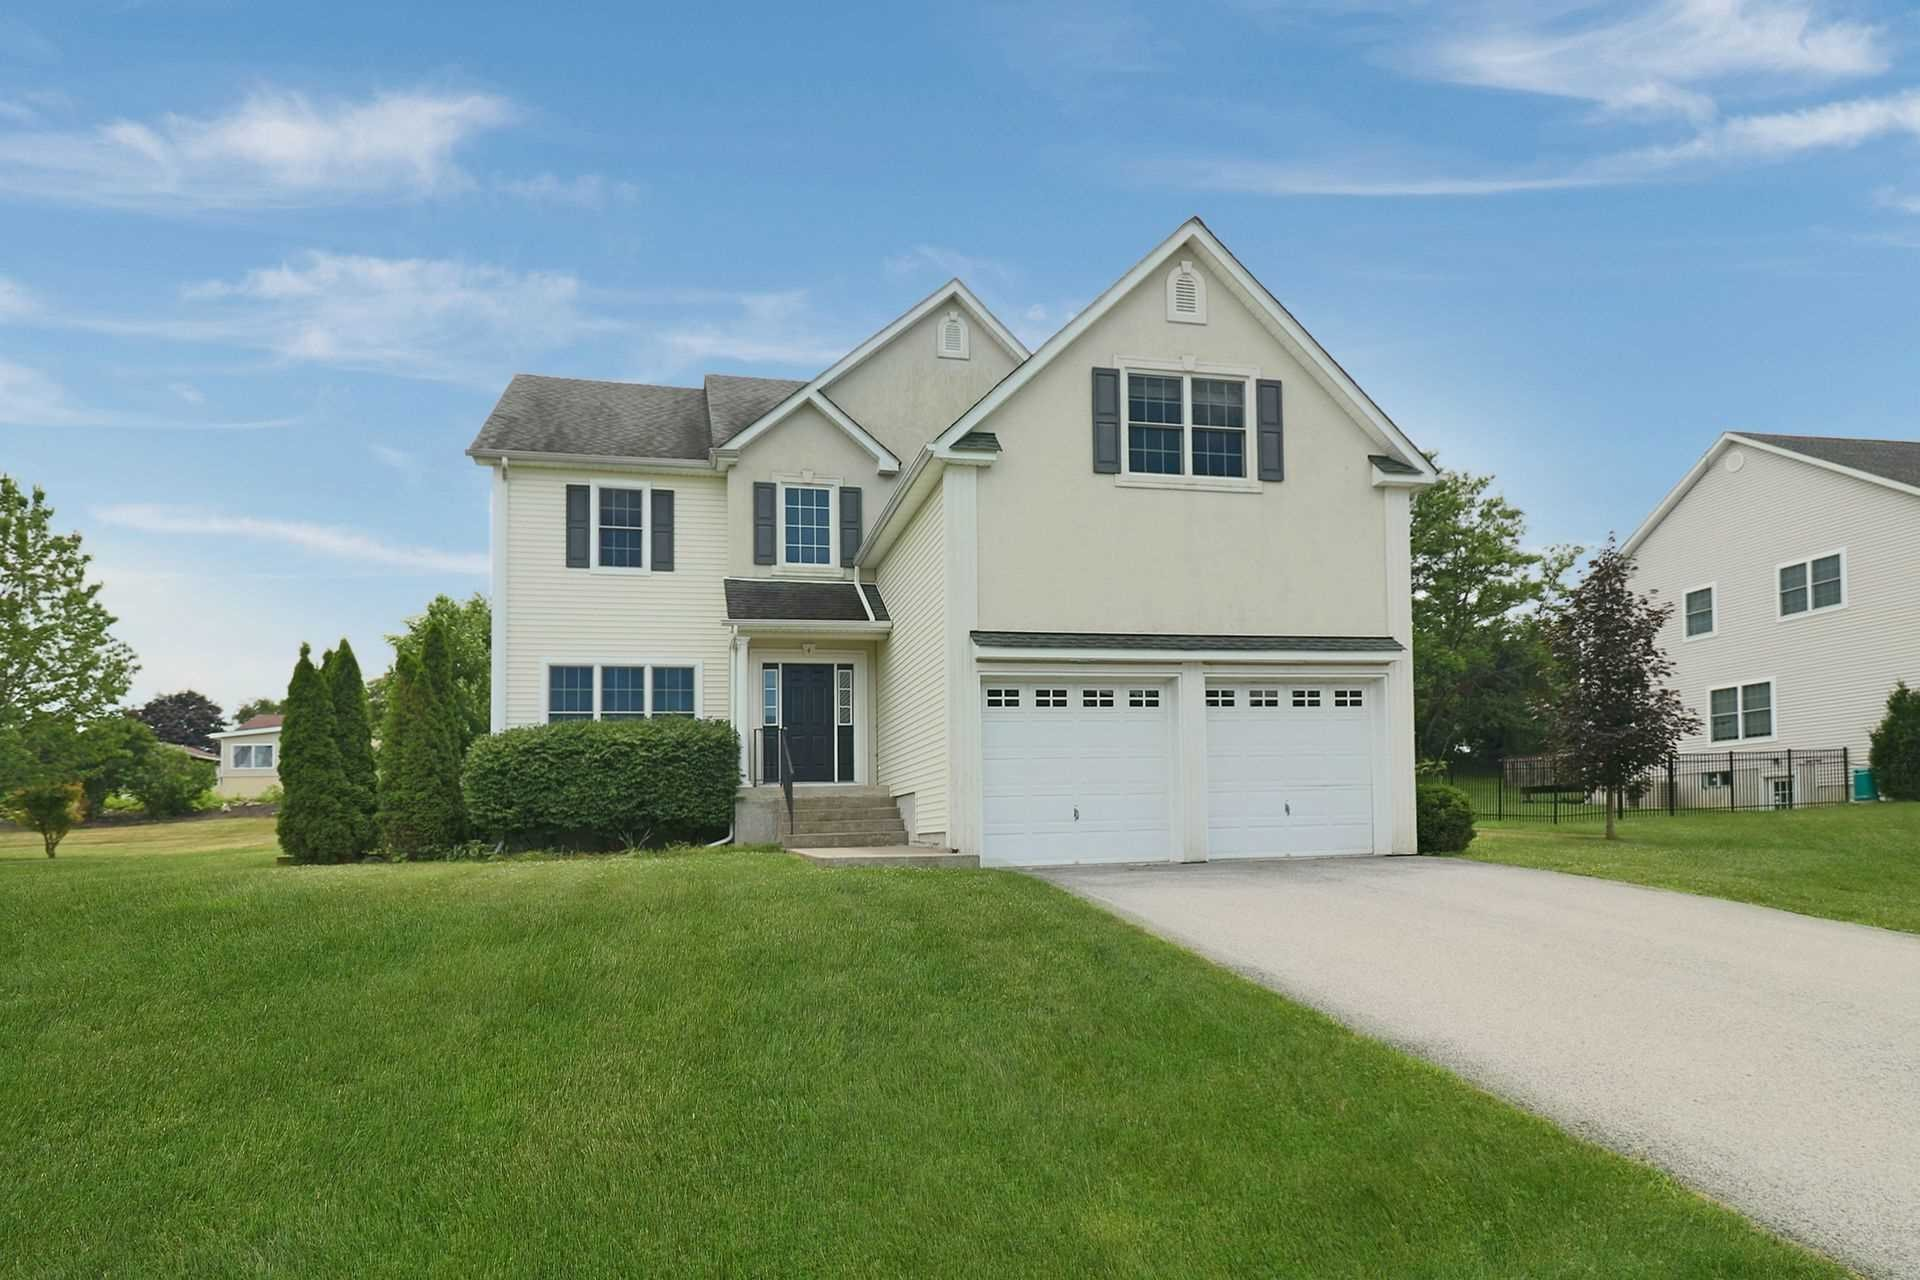 Single Family Home for Sale at 4 SUMMIT Drive 4 SUMMIT Drive Marlboro, New York 12542 United States